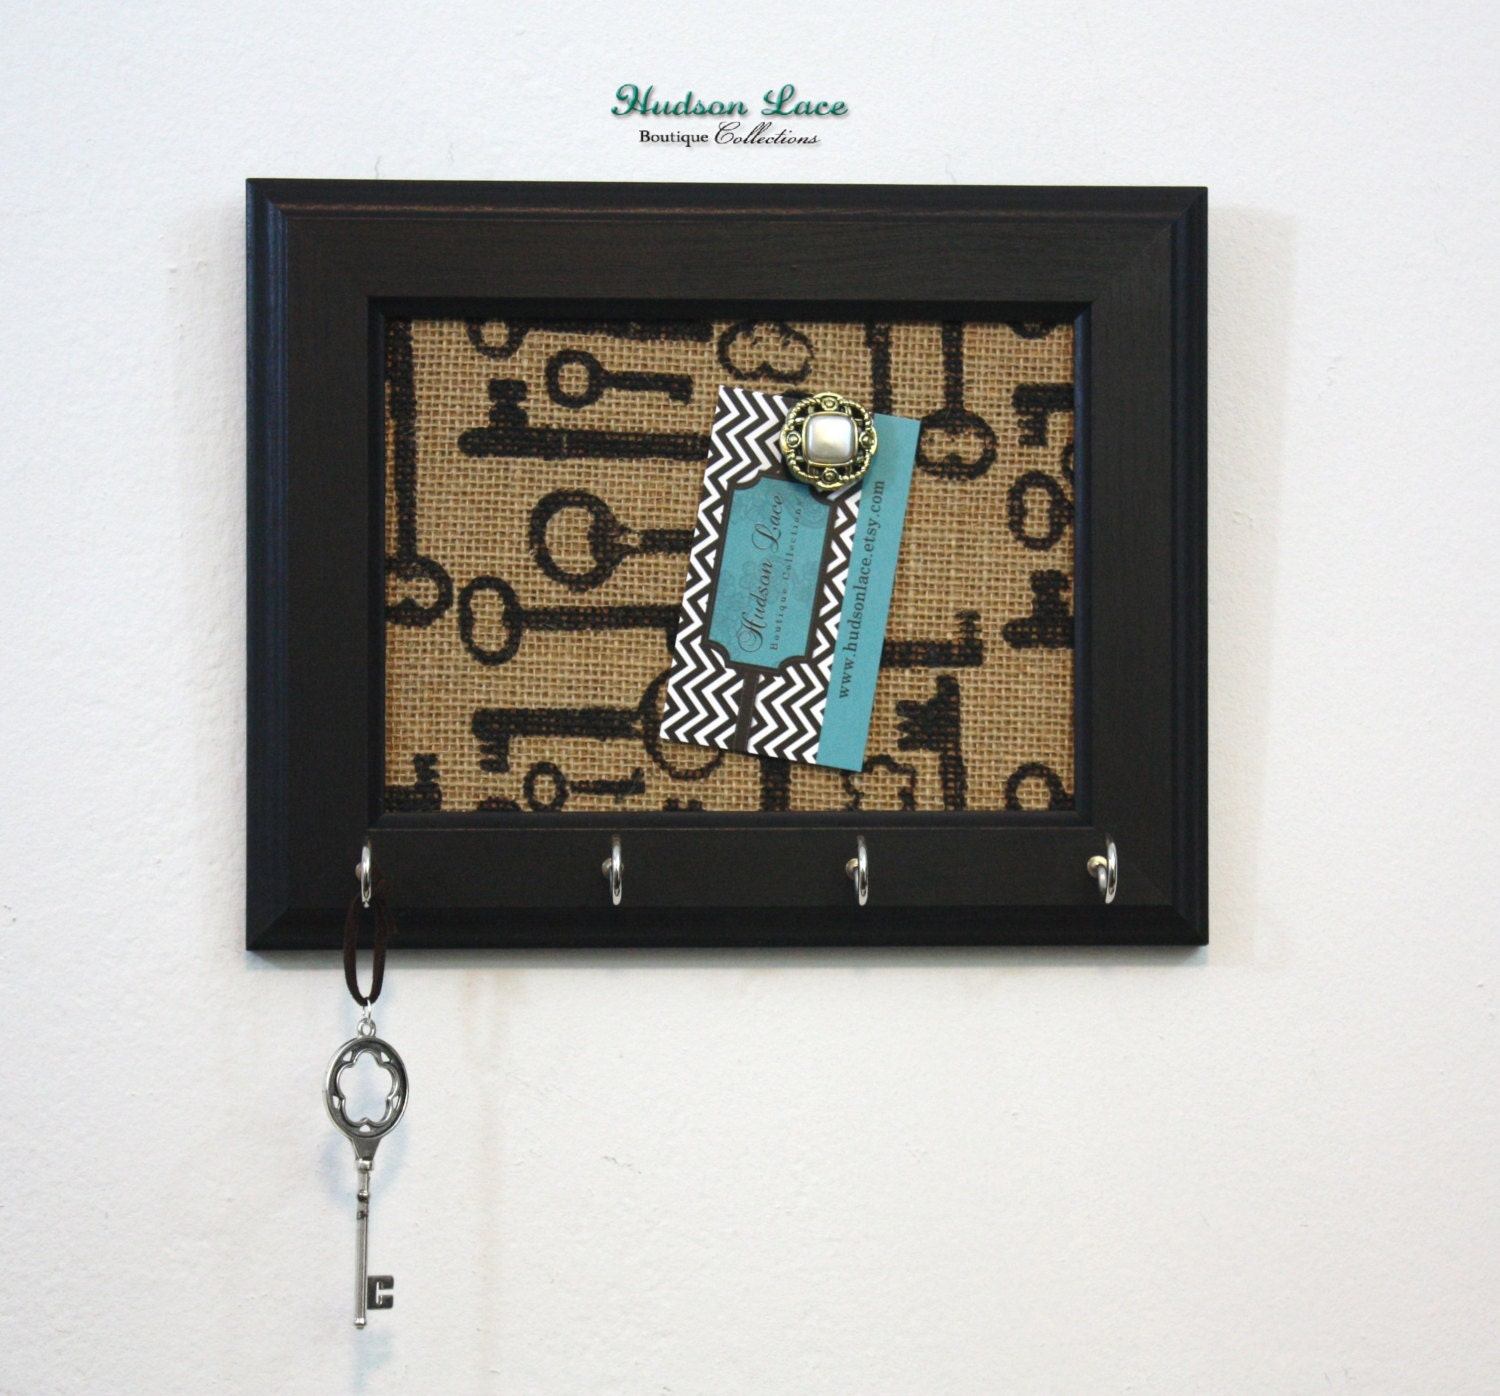 Home decor key holder housewarming gift by hudsonlace on etsy for Mural key holder